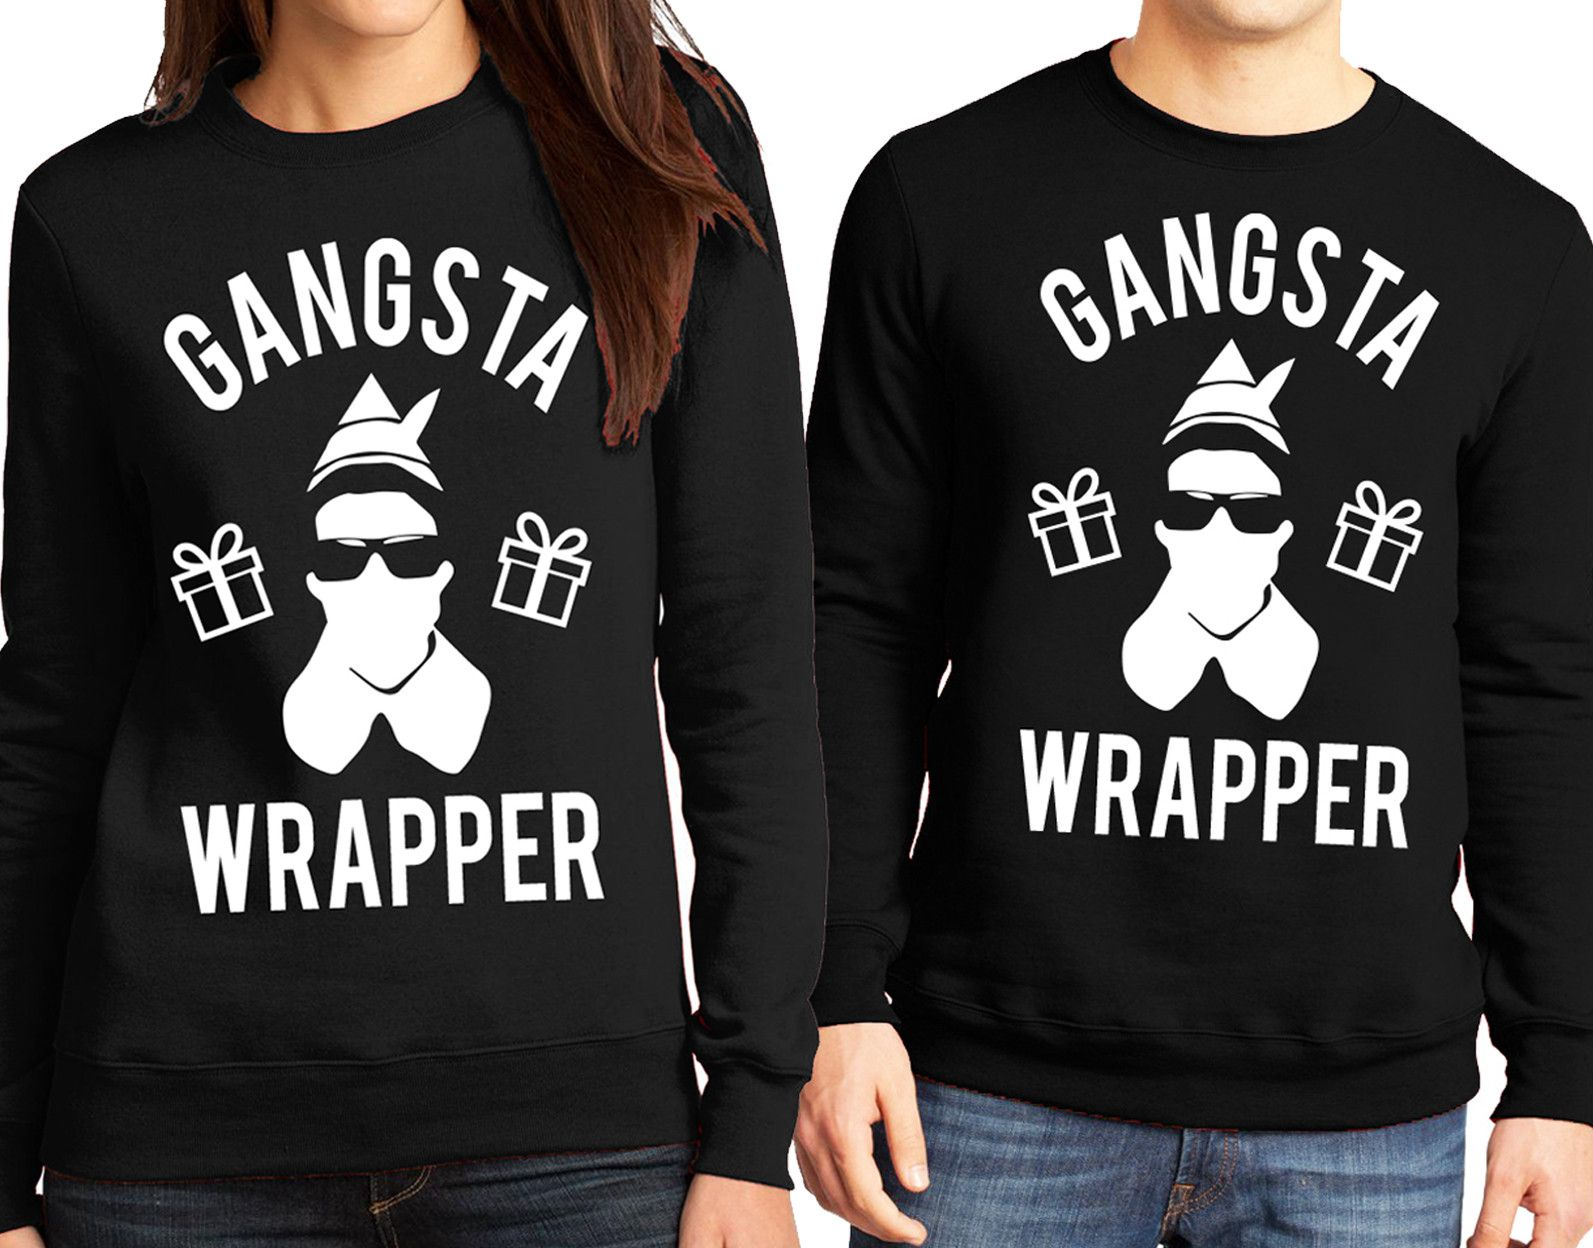 033f2cadc Funny GANGSTA WRAPPER #Christmas Sweater by NoBull Woman Apparel. Pick  between Red or Black at www.NoBullWoman-Apparel.com